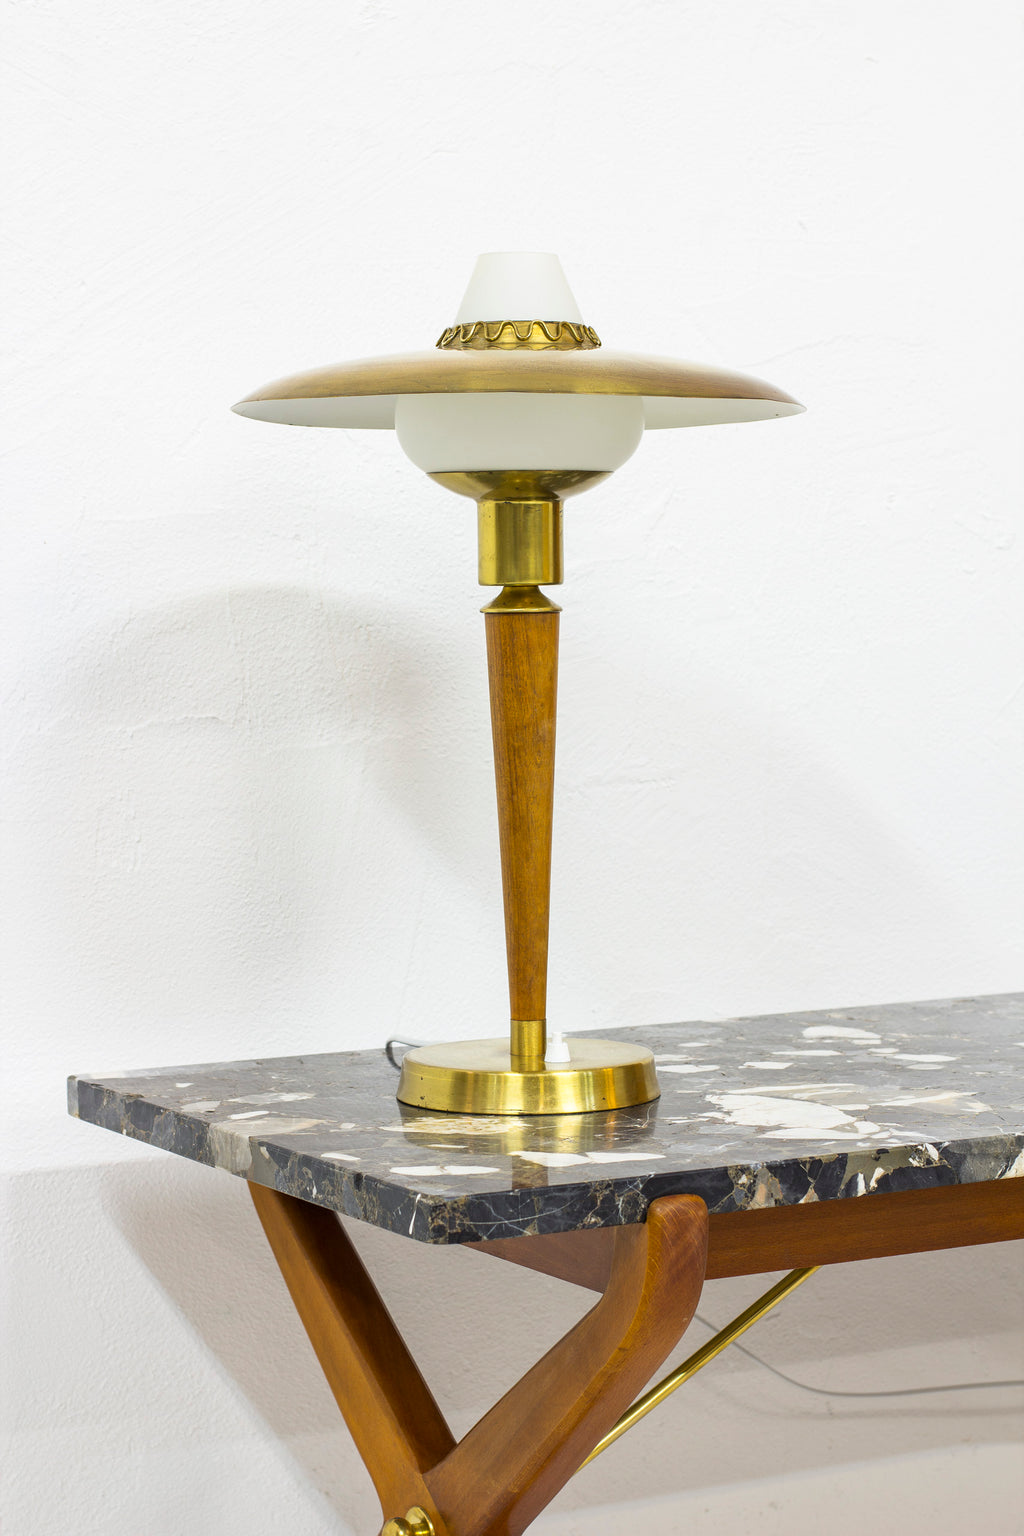 Rare table lamp by Hans Agne Jakobsson